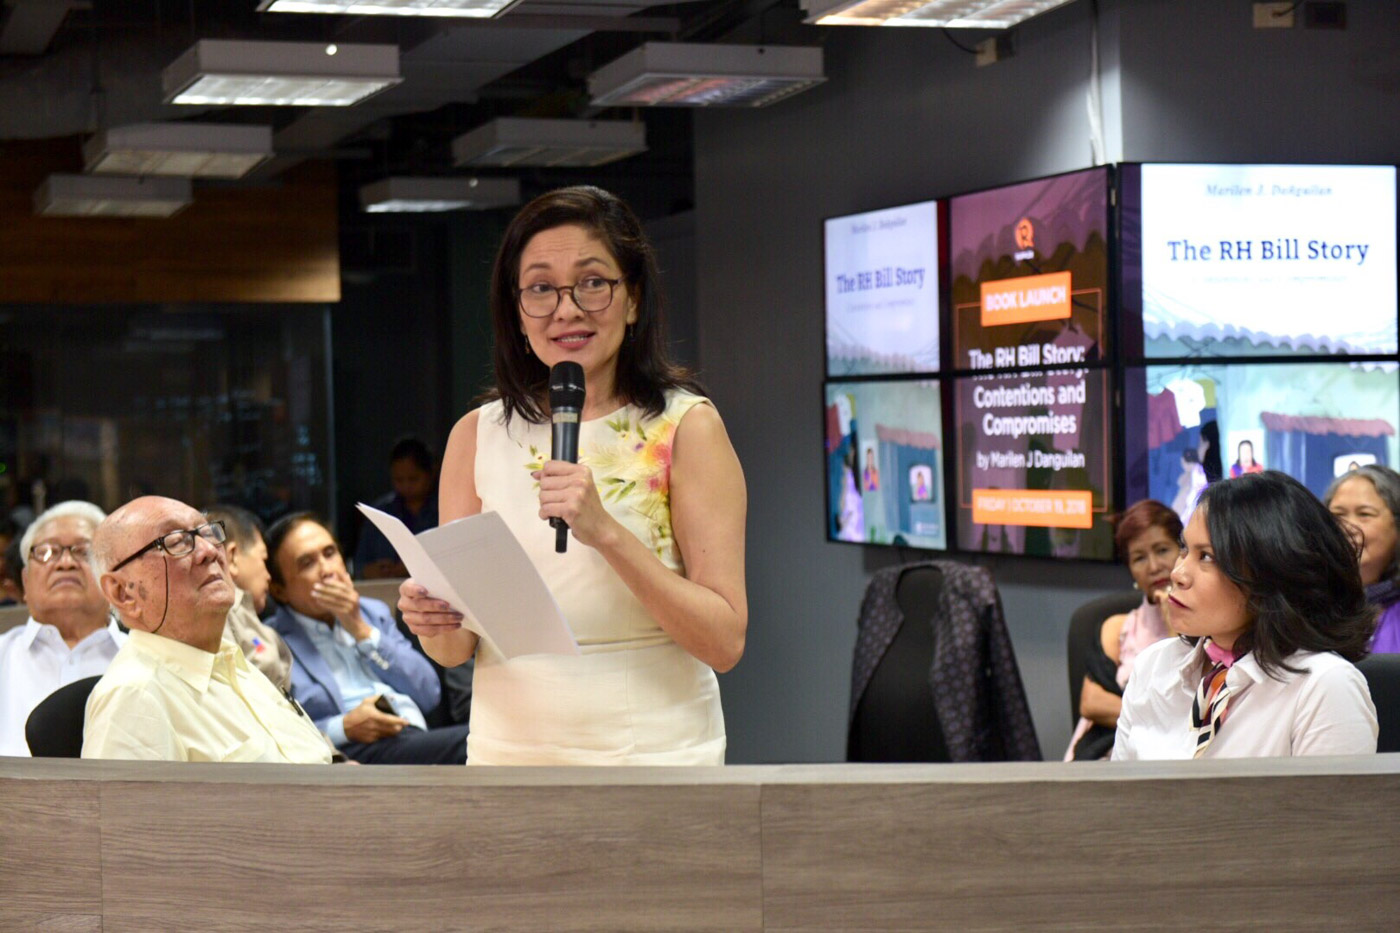 WOMEN'S RIGHTS. Senator Risa Hontiveros delivers her speech during the launch of 'The RH Bill Story: Contentions and Compromises.' Photo by Leanne Jazul/Rappler